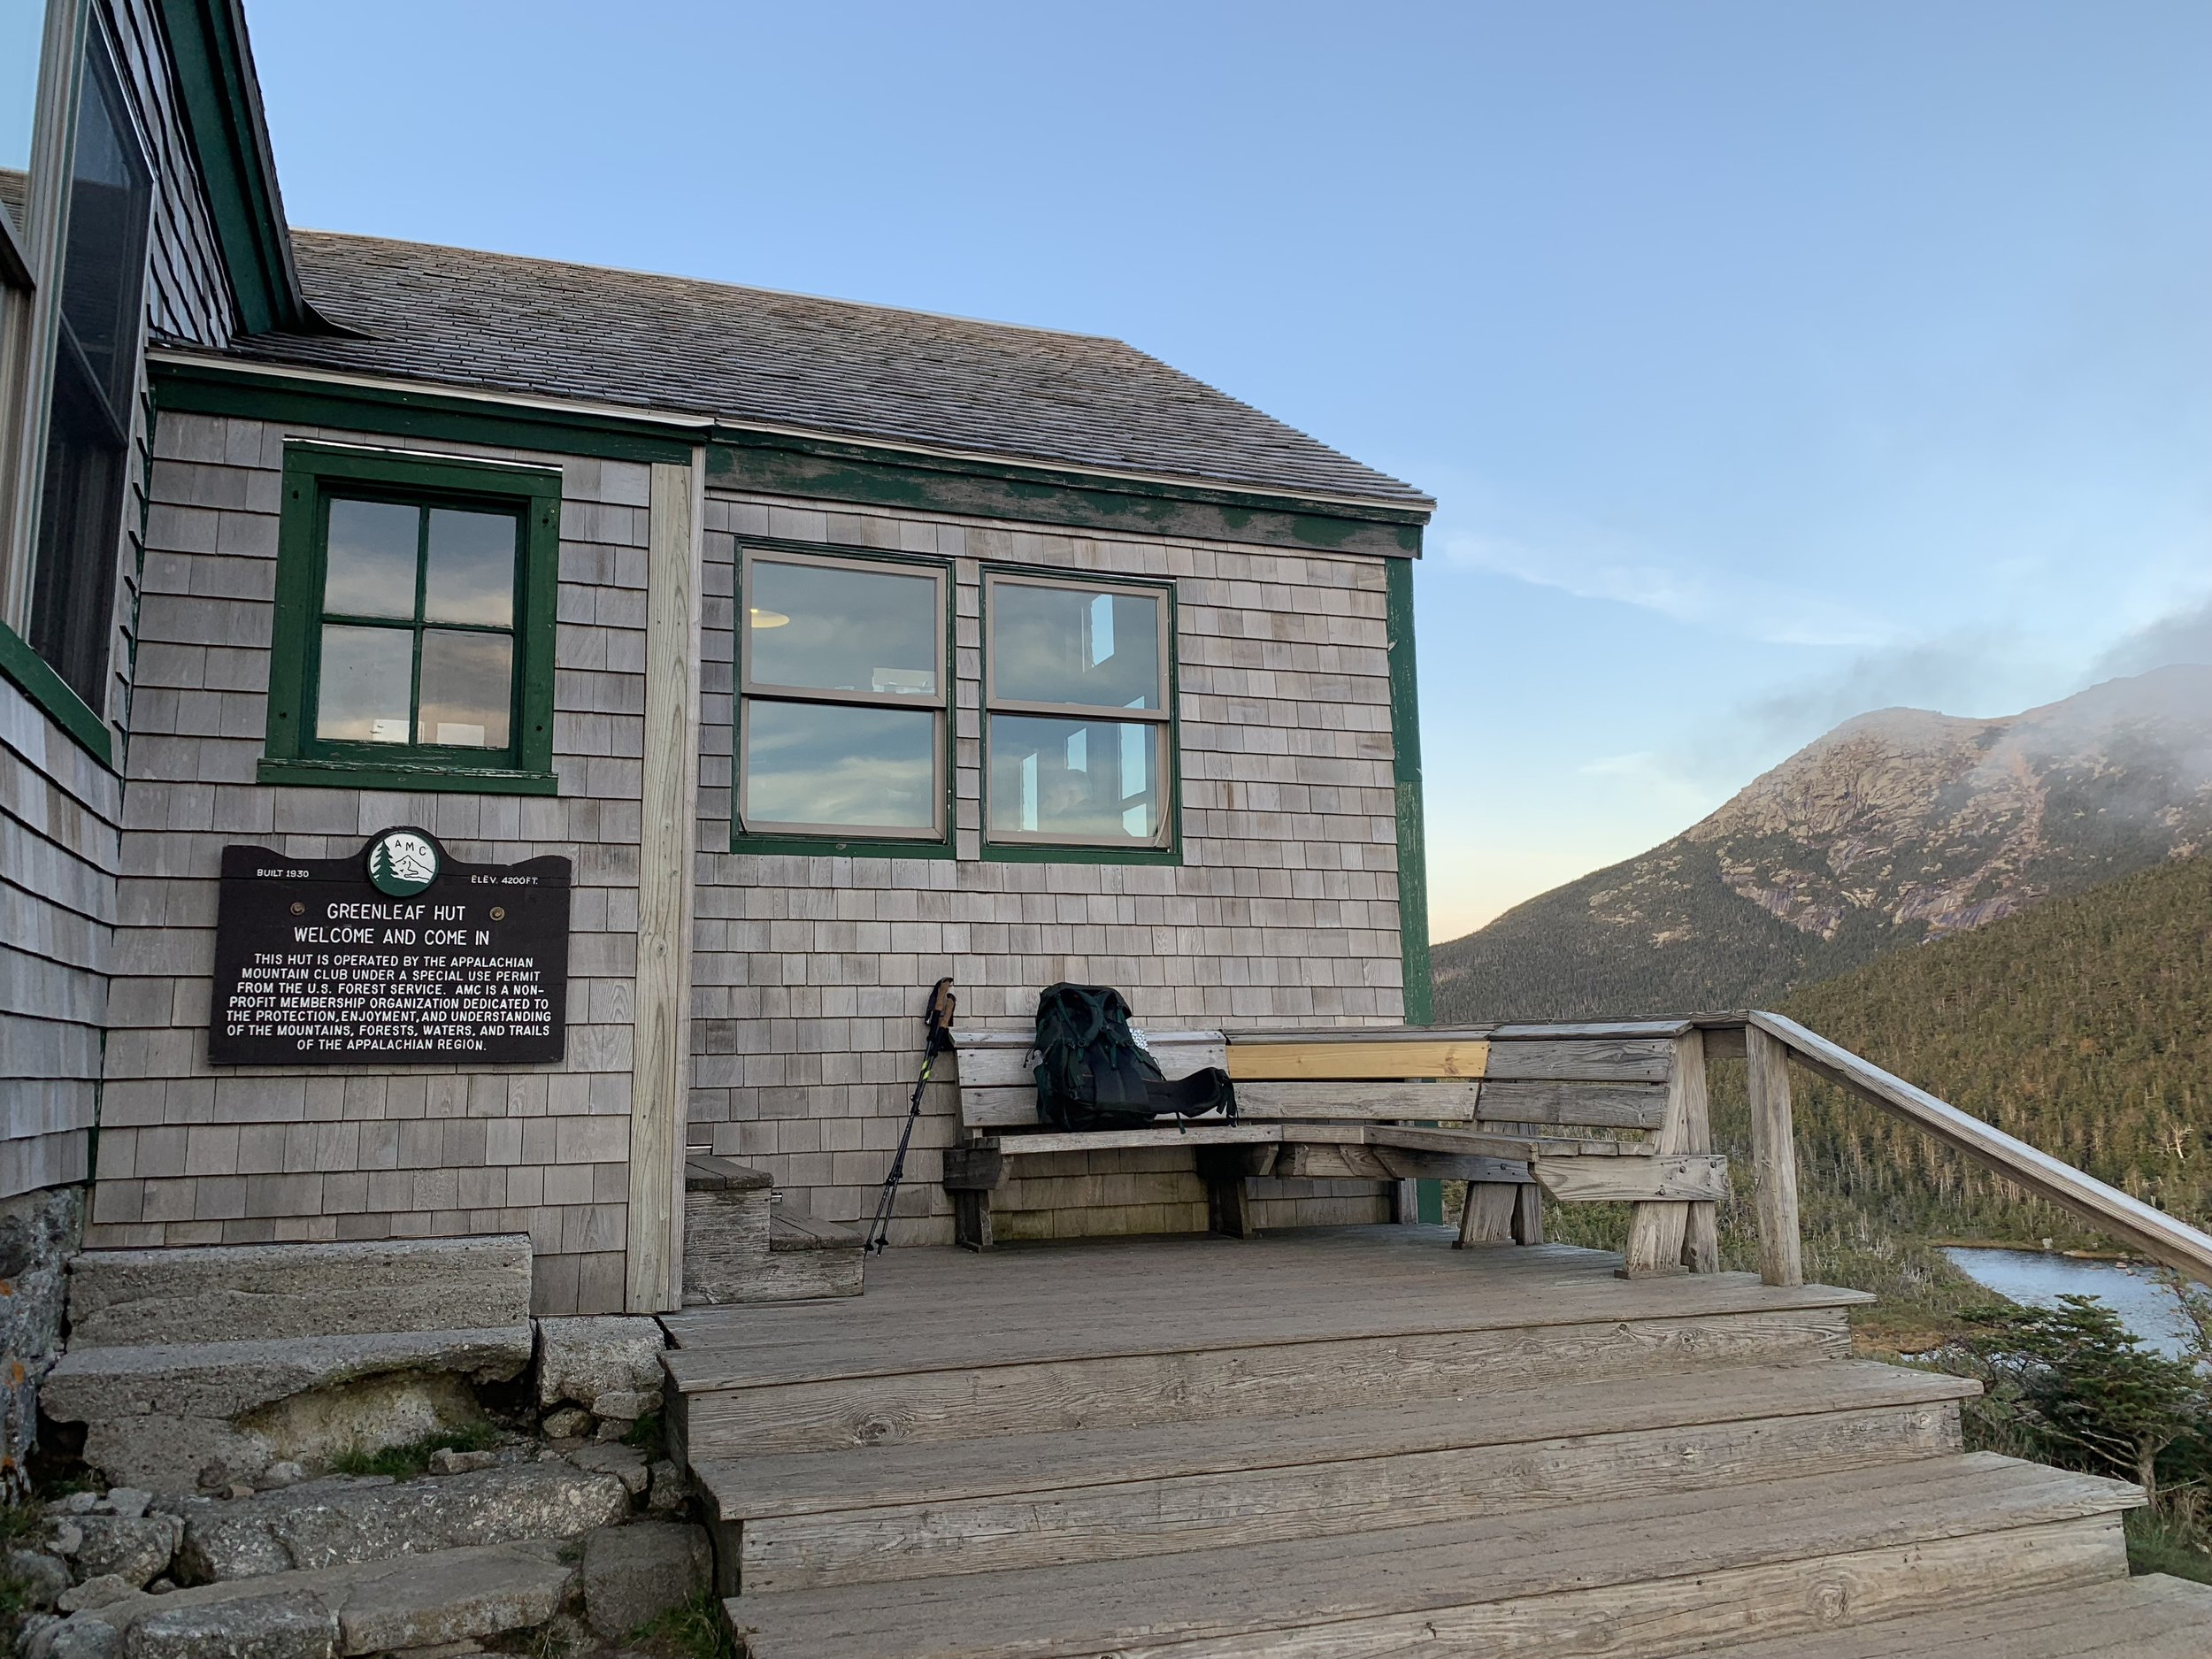 Greenleaf Hut, just one hut left.